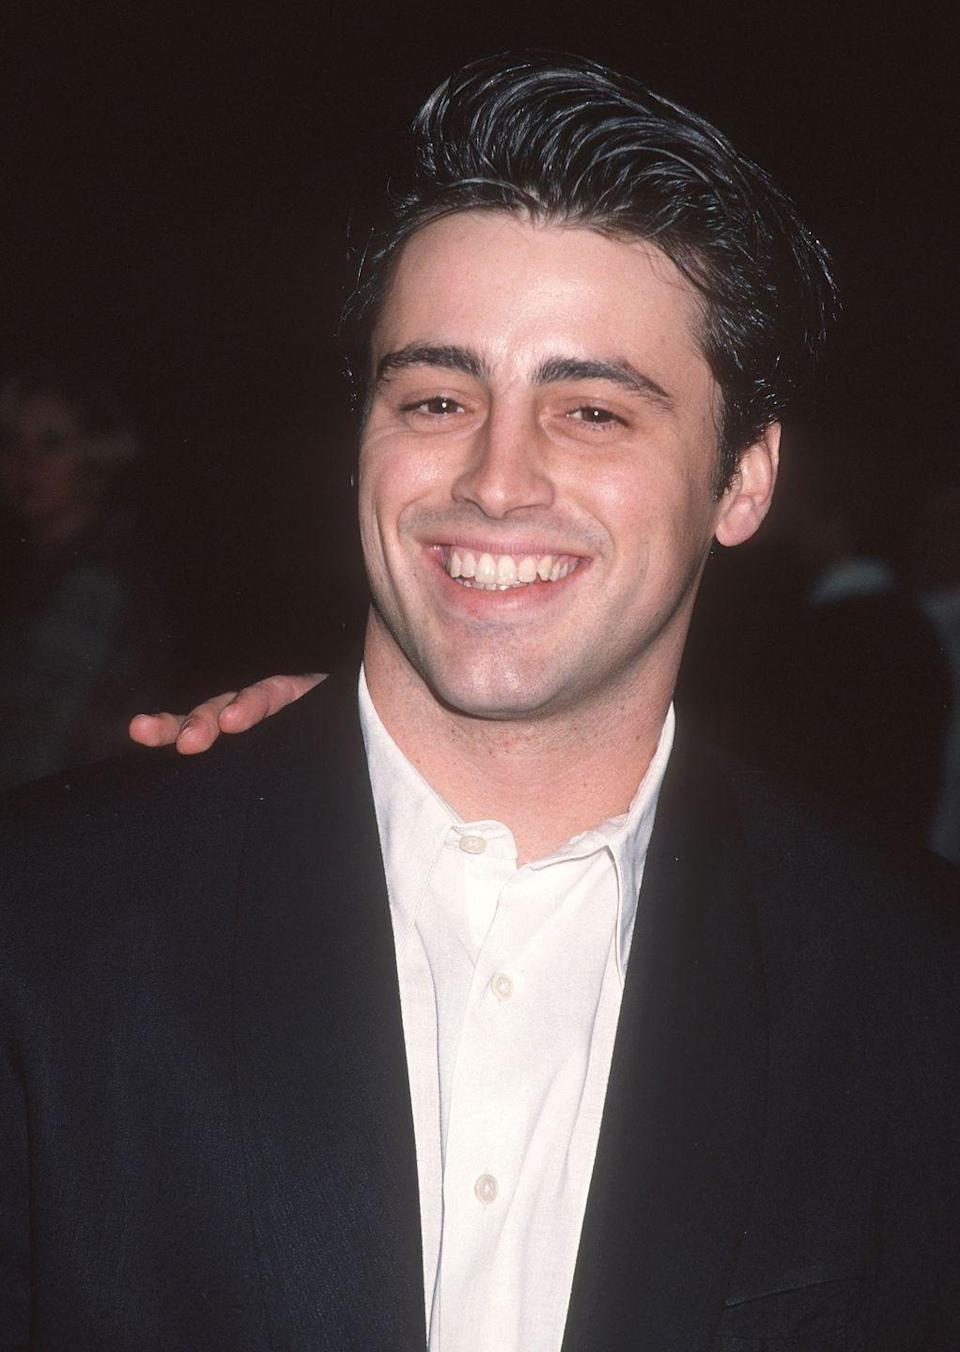 """<p>In <em>Friends, </em>Matt played the part of Joey Tribbiani, an actor struggling to break into the business—which is something Matt had experience with before landing <em>Friends.</em> """"You know when you think, 'Alright, I got a little money in the bank. I can hold out until the next gig,'"""" Matt <a href=""""https://www.youtube.com/watch?v=NcrLffEZD8E#action"""" rel=""""nofollow noopener"""" target=""""_blank"""" data-ylk=""""slk:said on Conan"""" class=""""link rapid-noclick-resp"""">said on <em>Conan</em></a>. """"I think I was down to $11...now, that's holding out too long.""""</p>"""